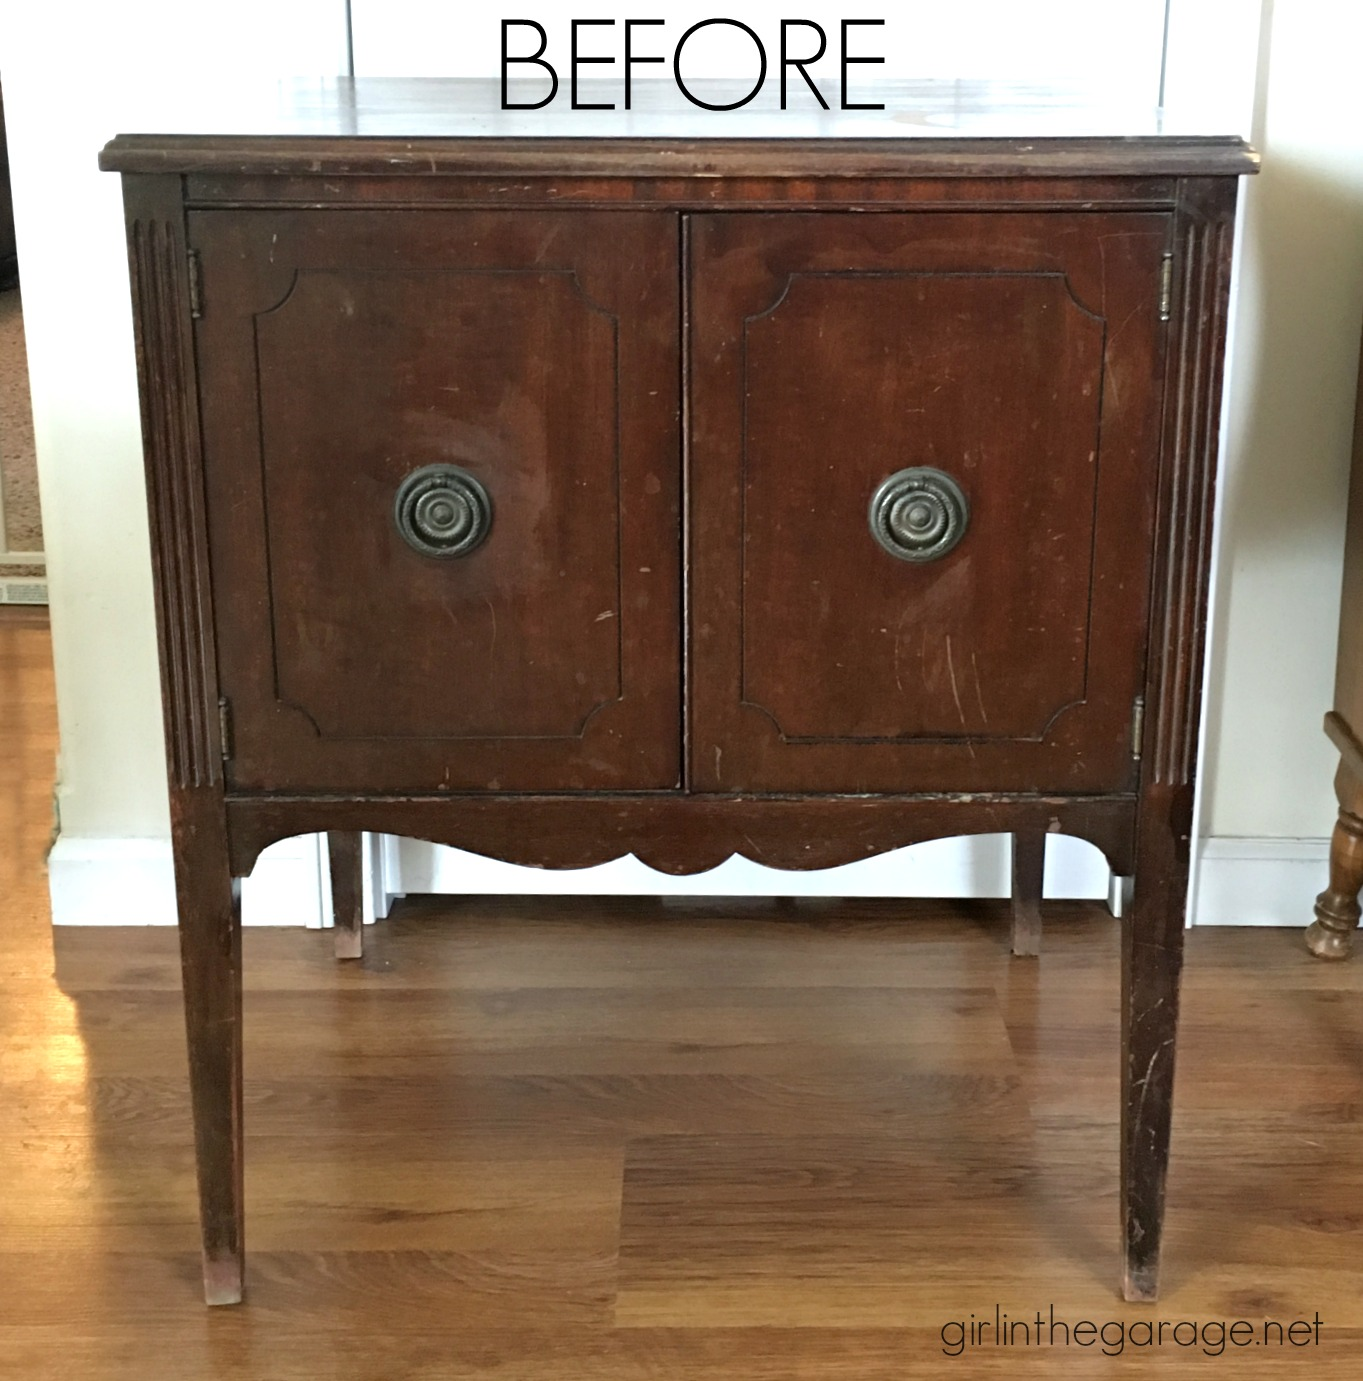 DIY record cabinet makeover repurposed to faux DIY card catalog with Chalk Paint - tutorial by Girl in the Garage